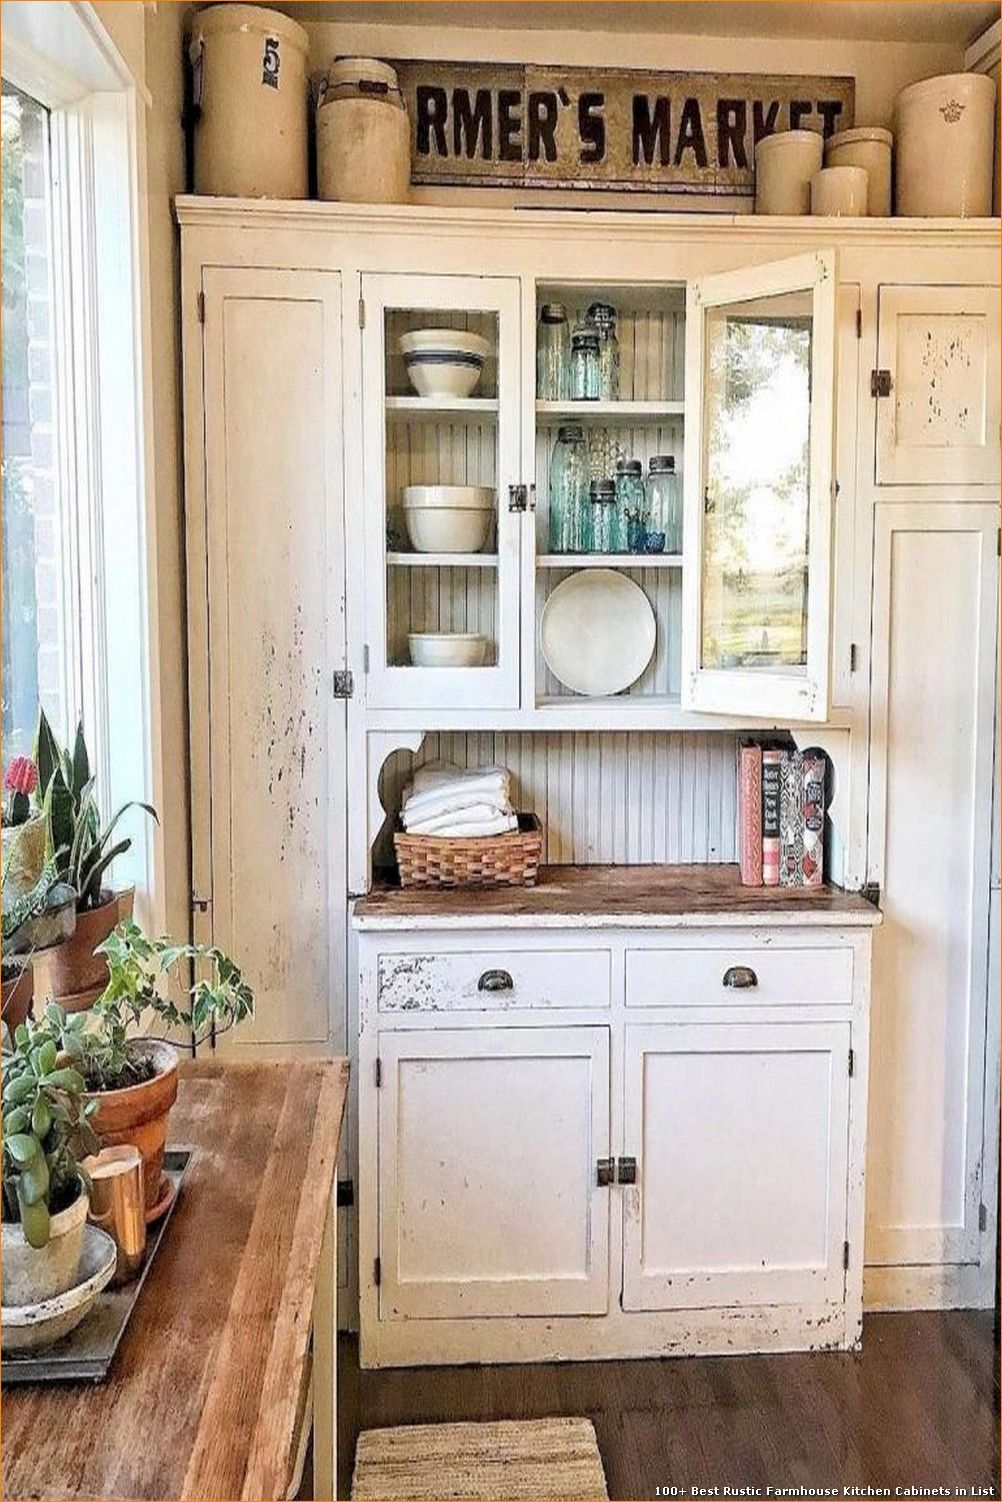 100+ Best Rustic Farmhouse Kitchen Cabinets in List - Decorating Ideas - Home Decor Ideas and Tips